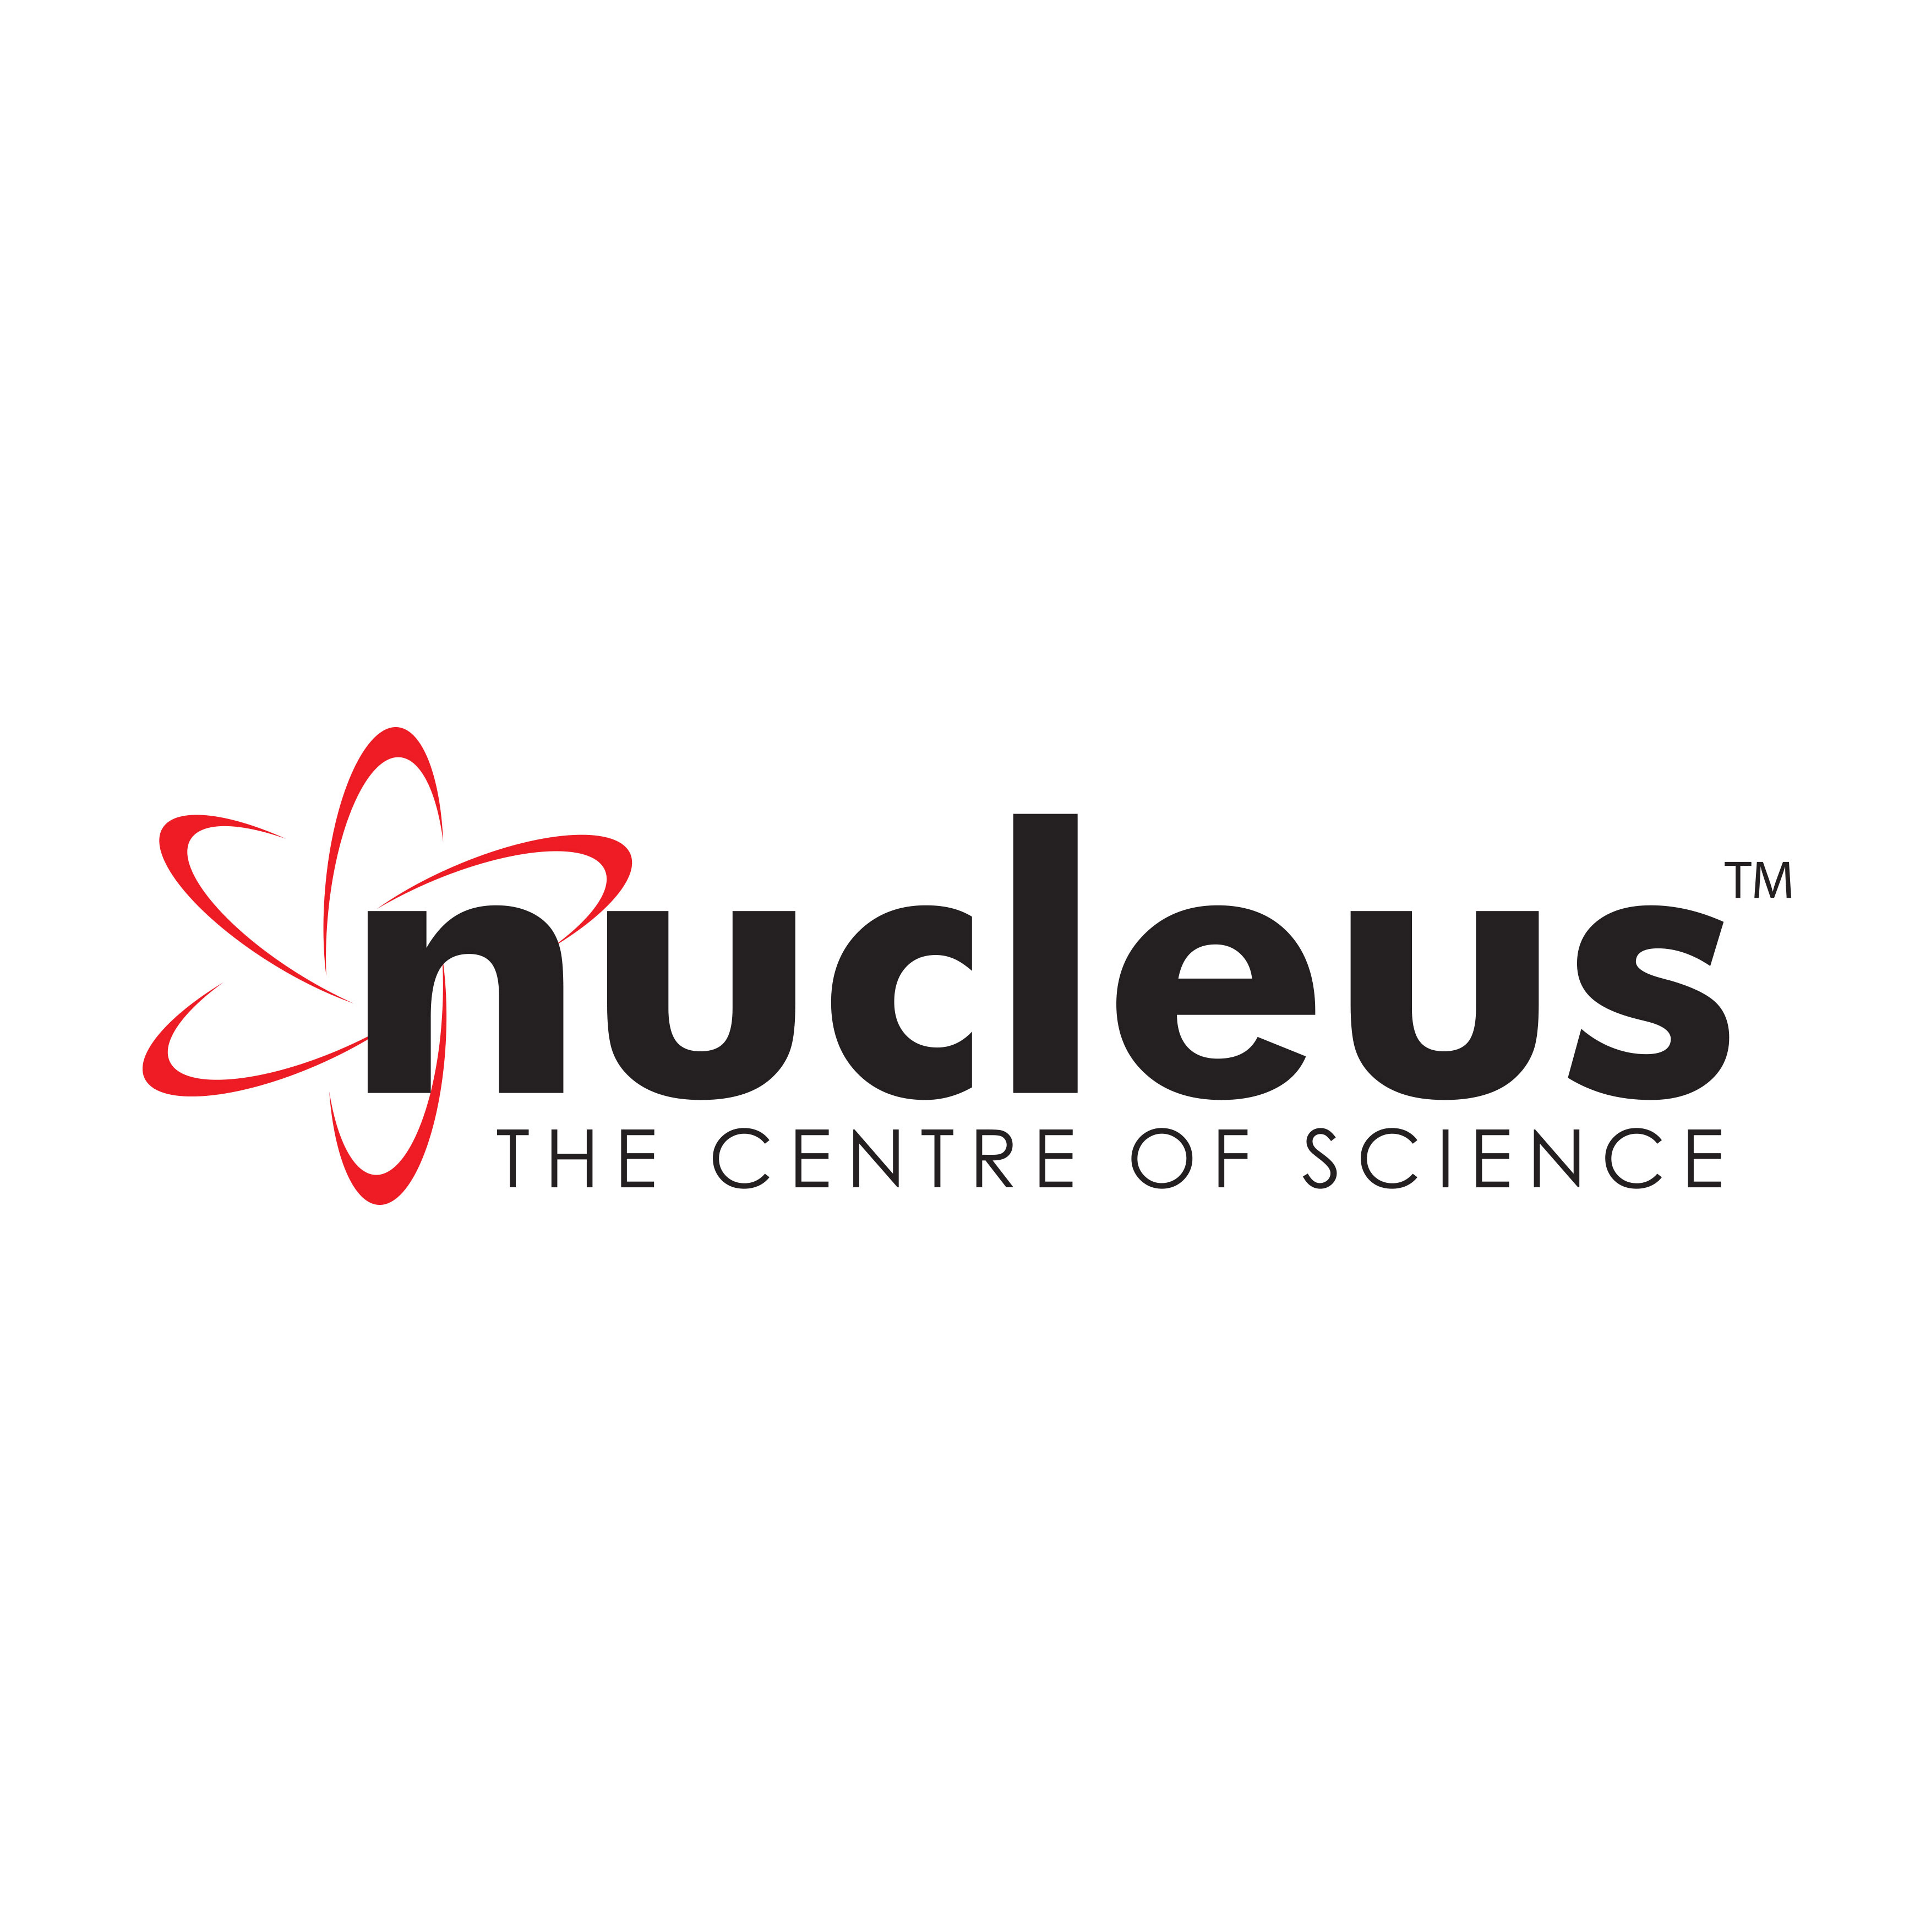 Nucleus, The Centre of Science in palakkad-town, palakkad